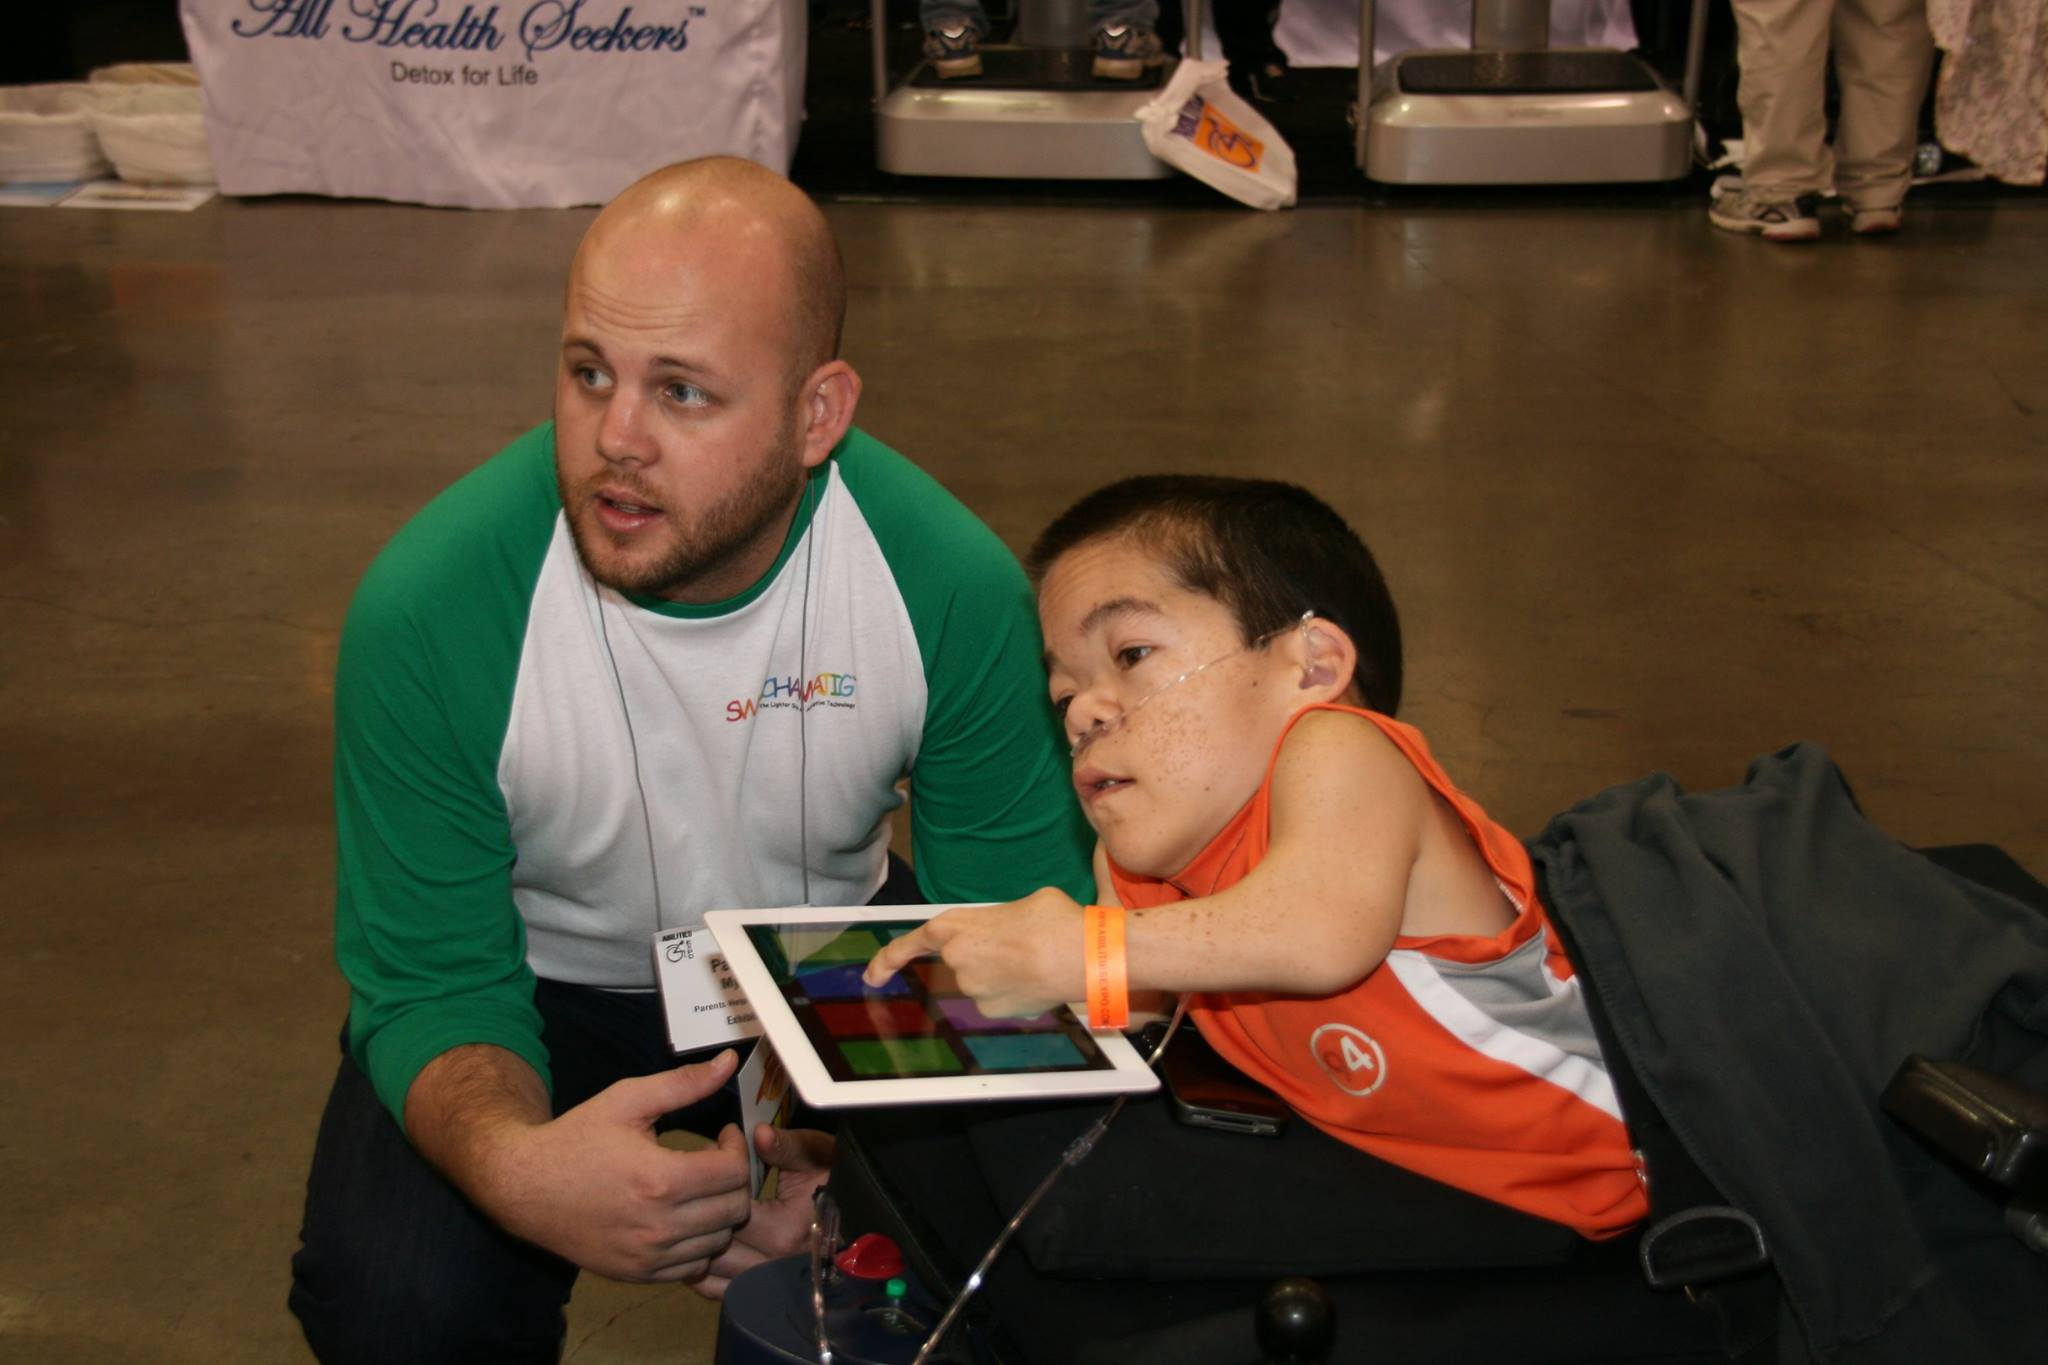 A man wearing a baseball shirt is crouching down. He is next to a man using a wheelchair holding an iPad.